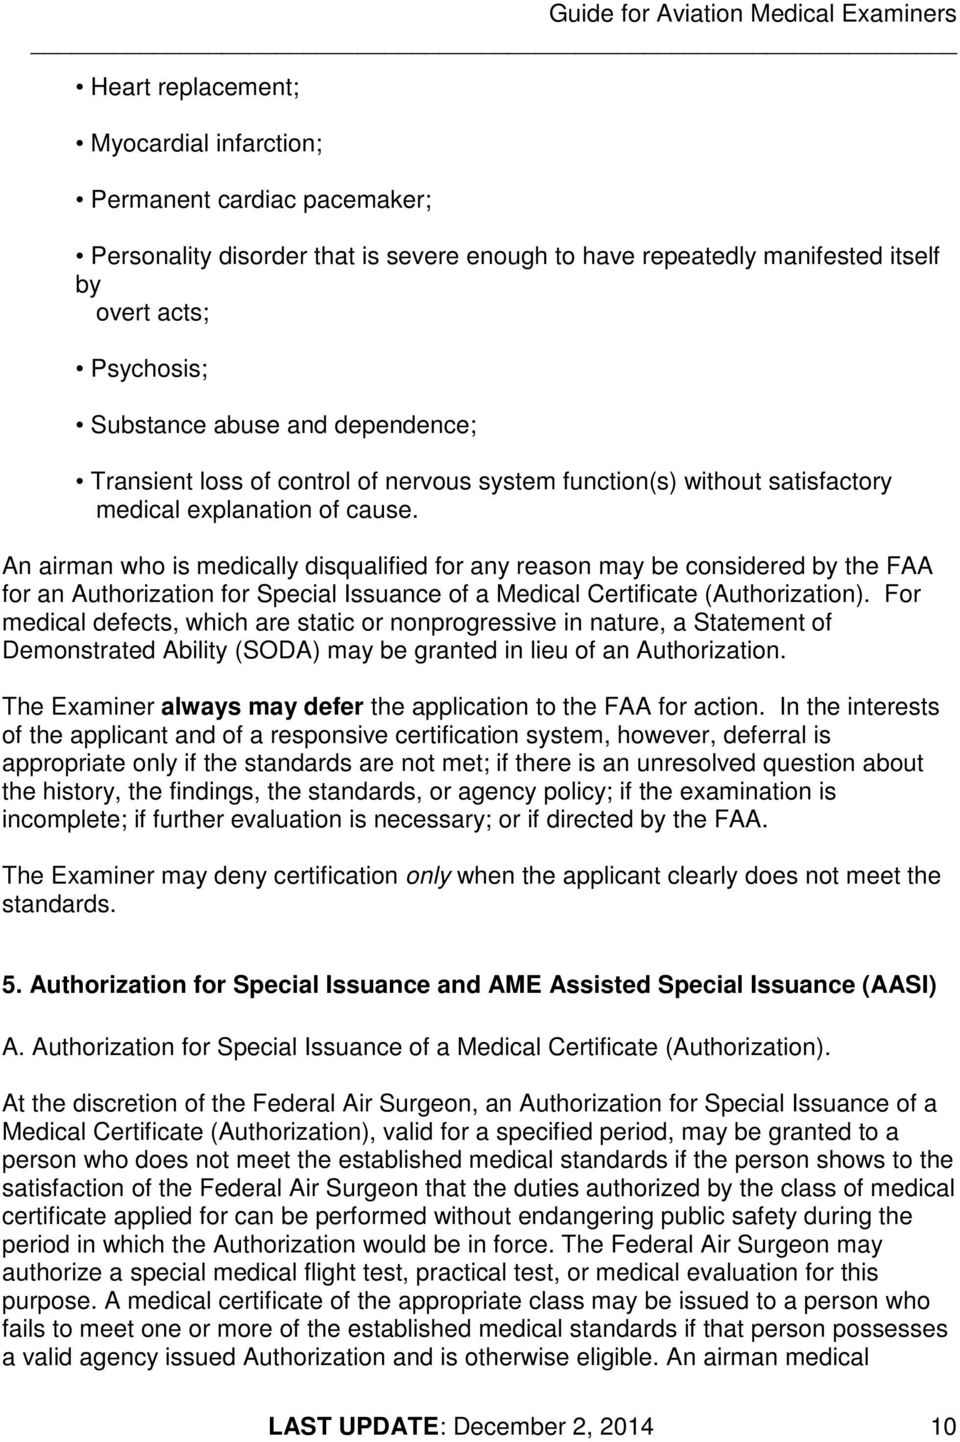 An airman who is medically disqualified for any reason may be considered by the FAA for an Authorization for Special Issuance of a Medical Certificate (Authorization).